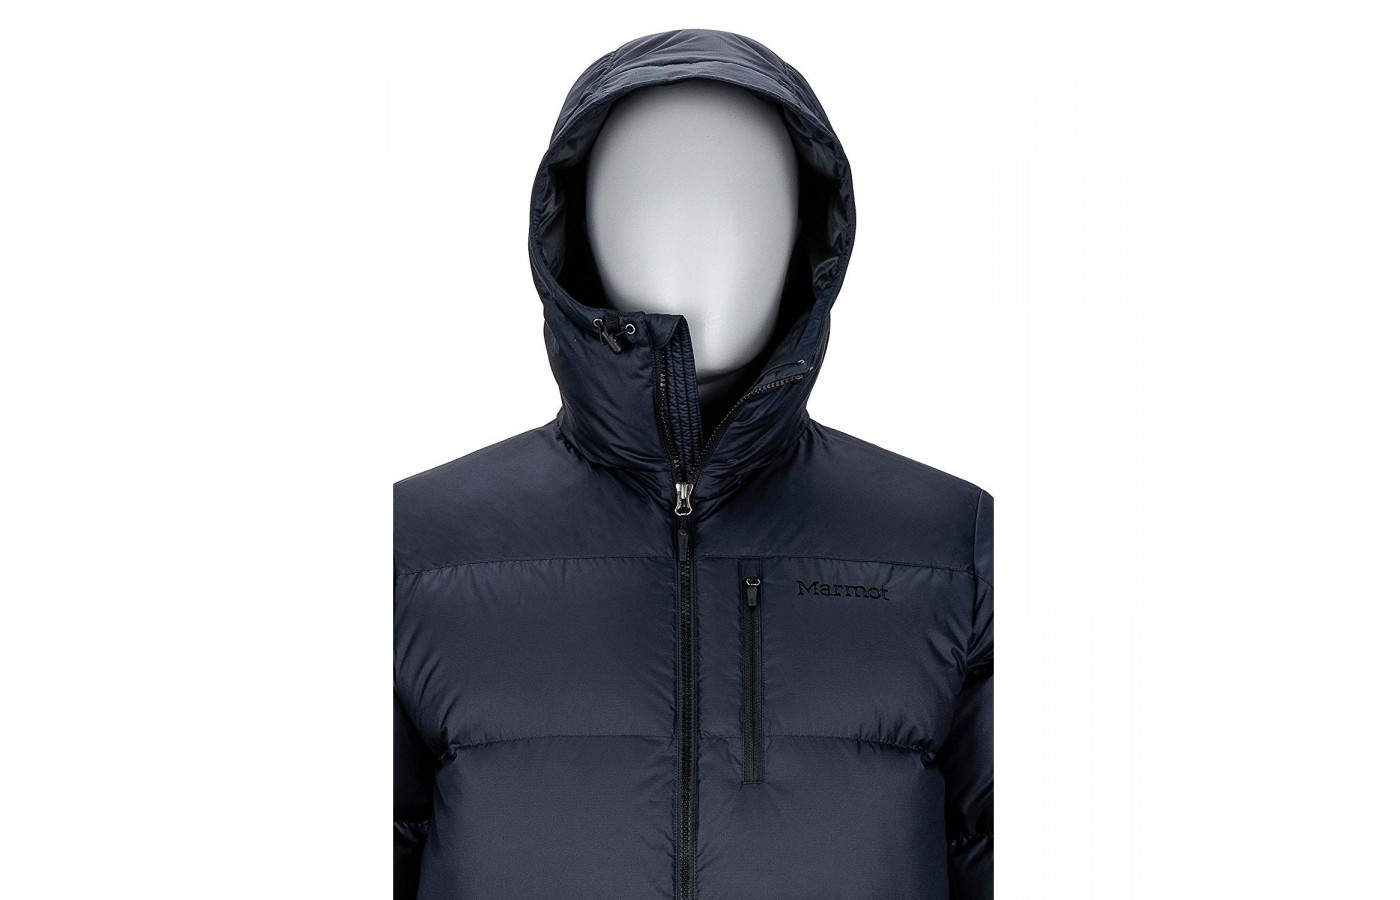 The Marmot Guides Down Hoody offers a close fitted hood and a wind protection flap inside the zipper for security and protection.